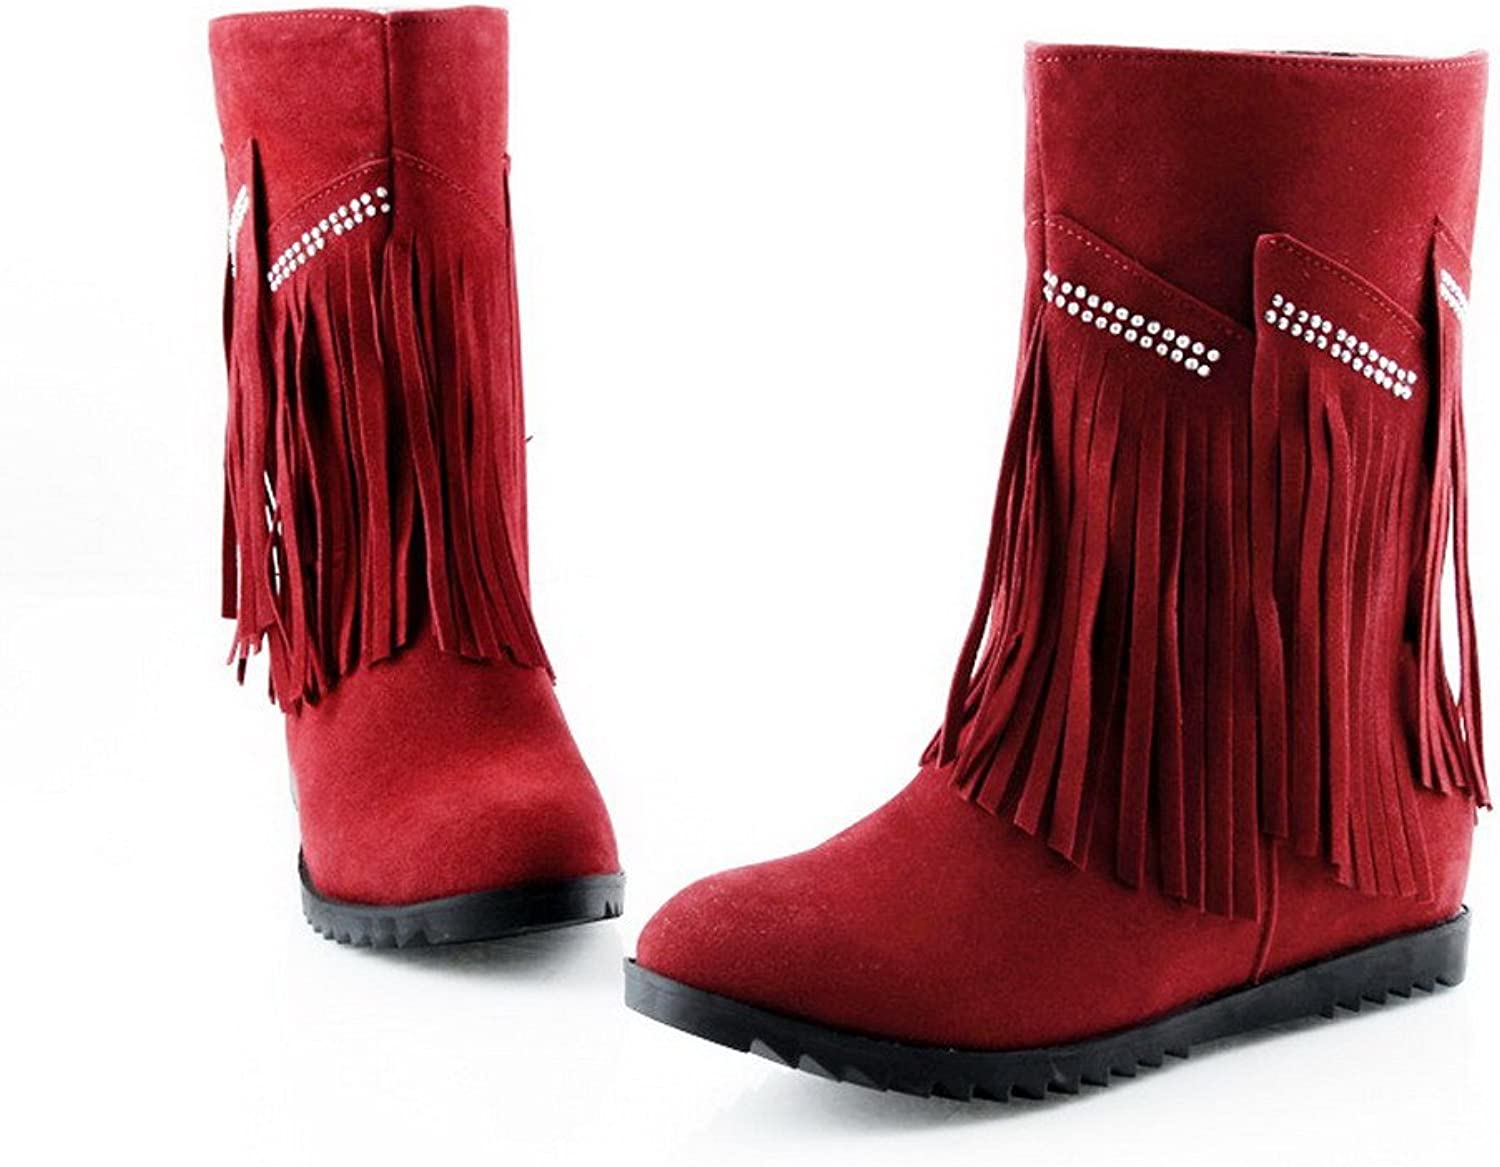 AmoonyFashion Womens Closed Round Toe Low Heels PU Short Plush Solid Boots with Tassels and Glass Diamond, Red, 7.5 B(M) US